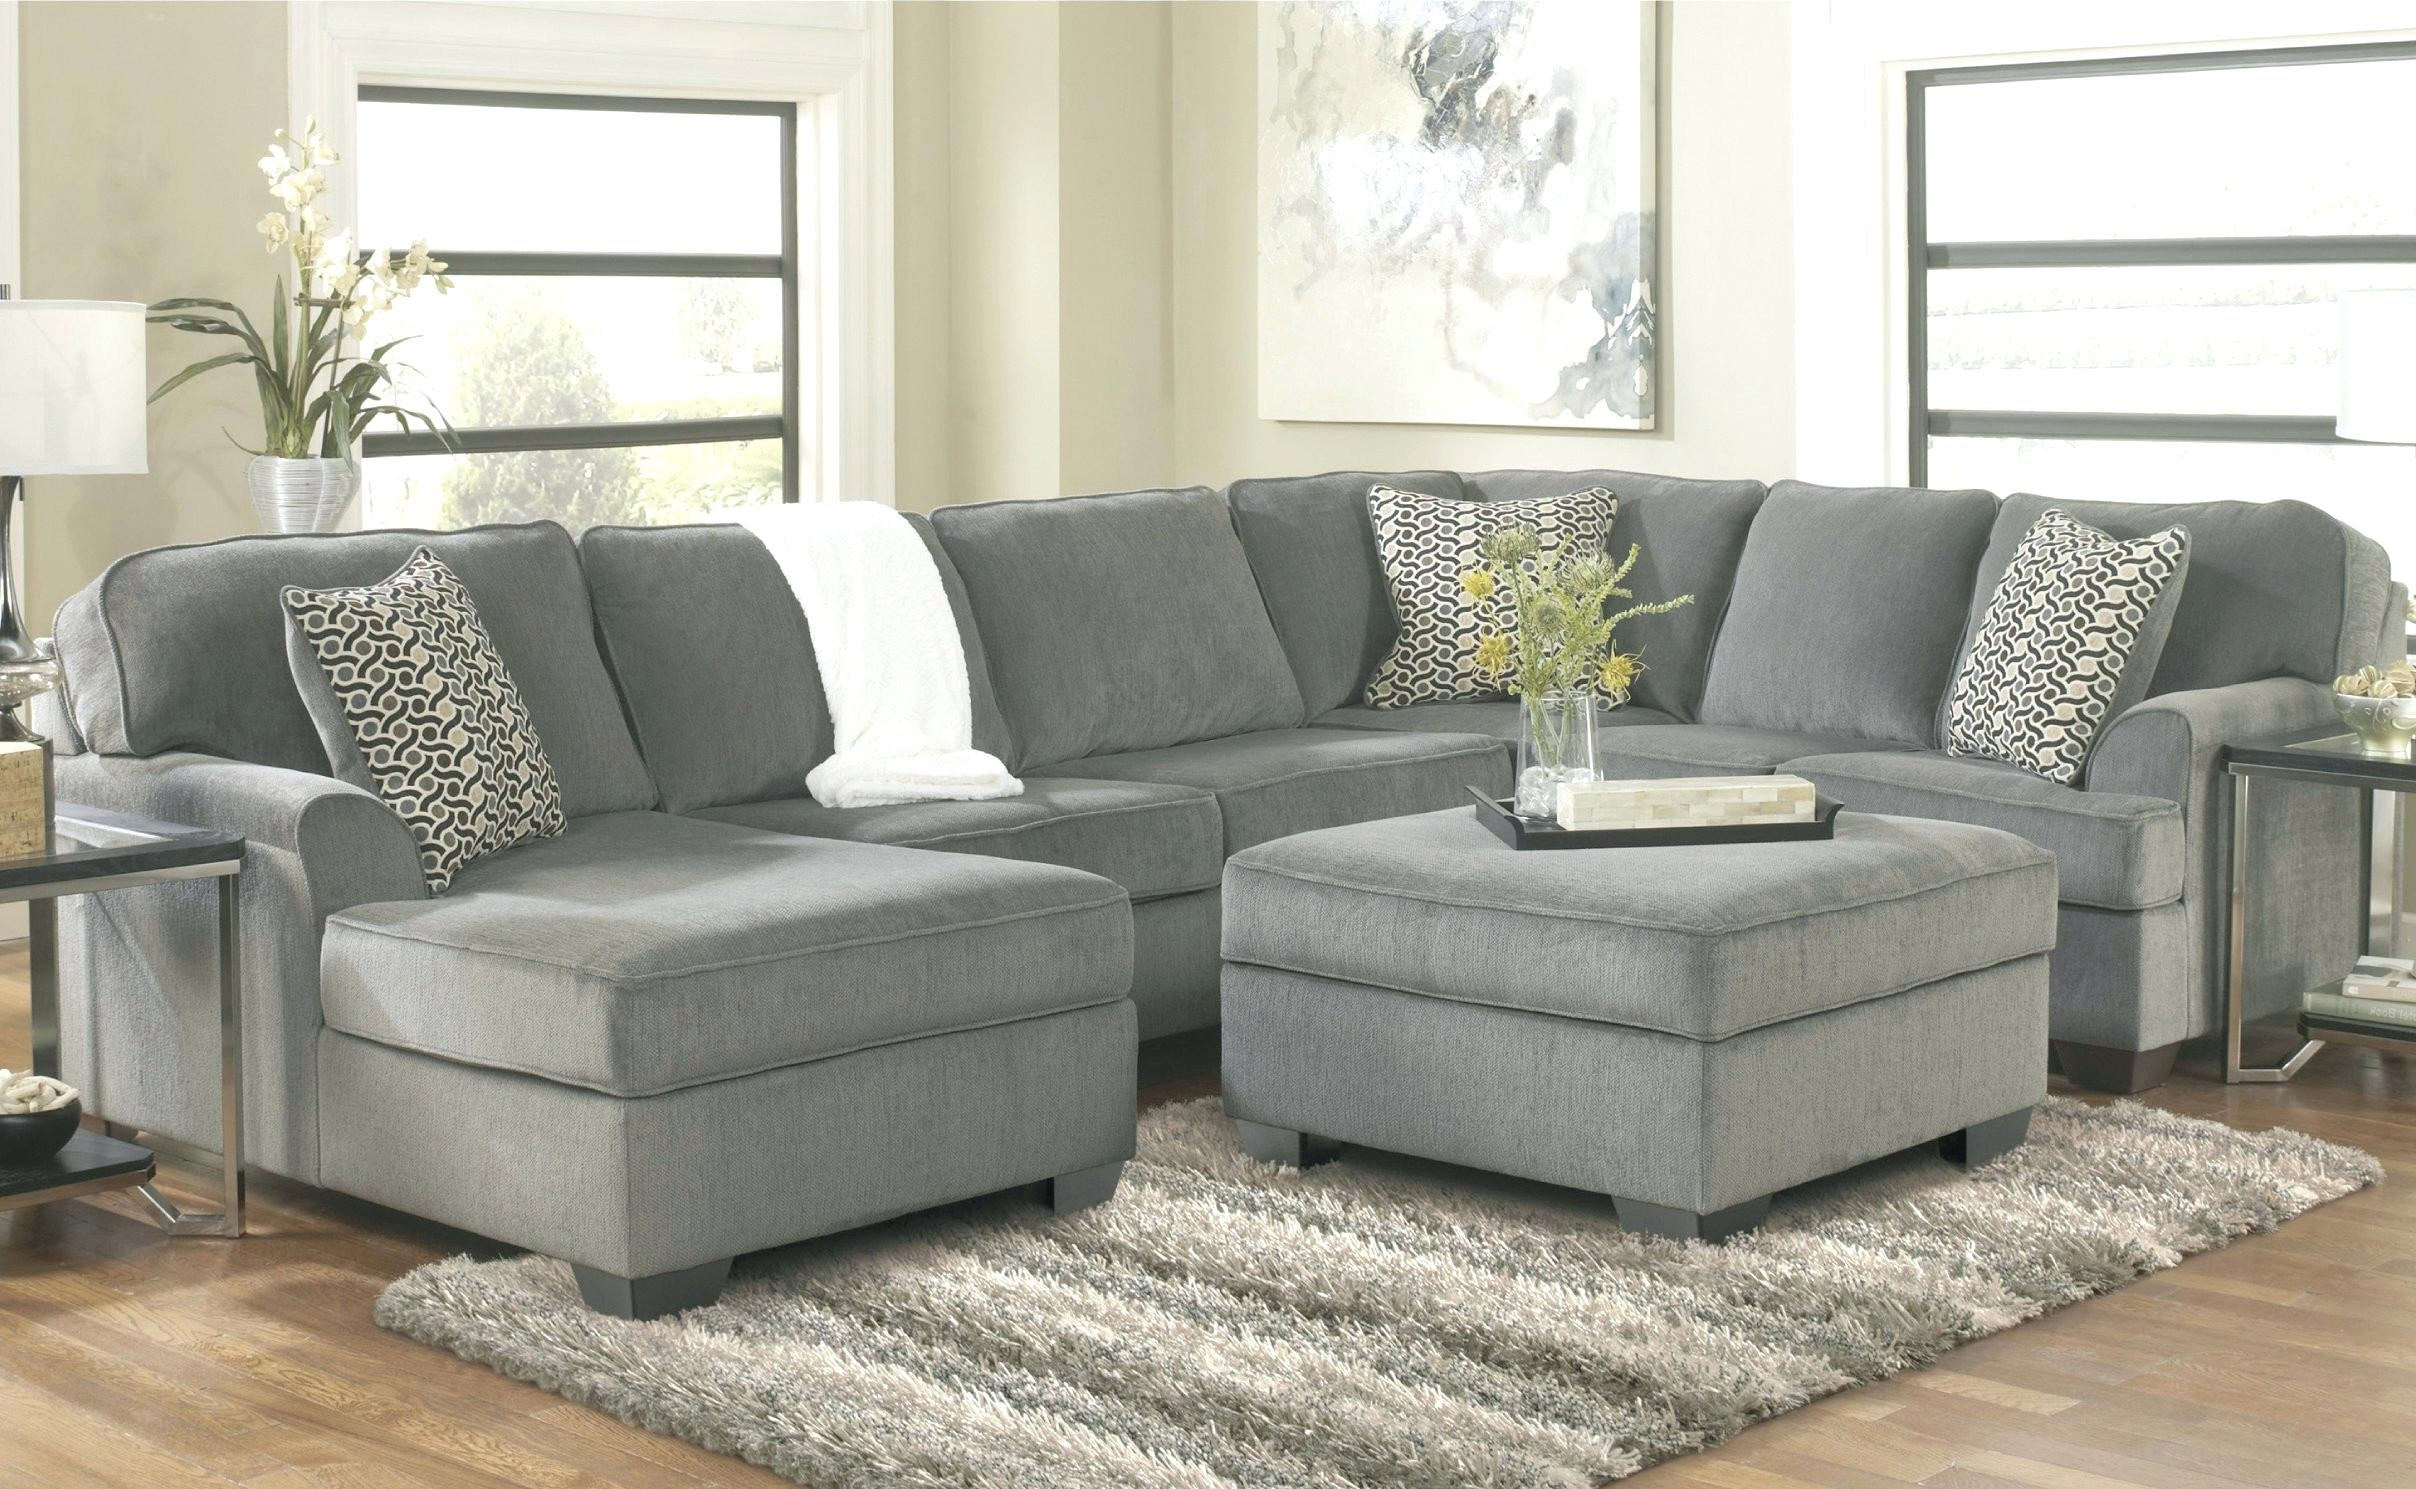 Favorite Clearance Sectional Sofas With Regard To Clearance Sectional Sas Sa Outdoor Patio Furniture Sectionals Mn (View 2 of 15)